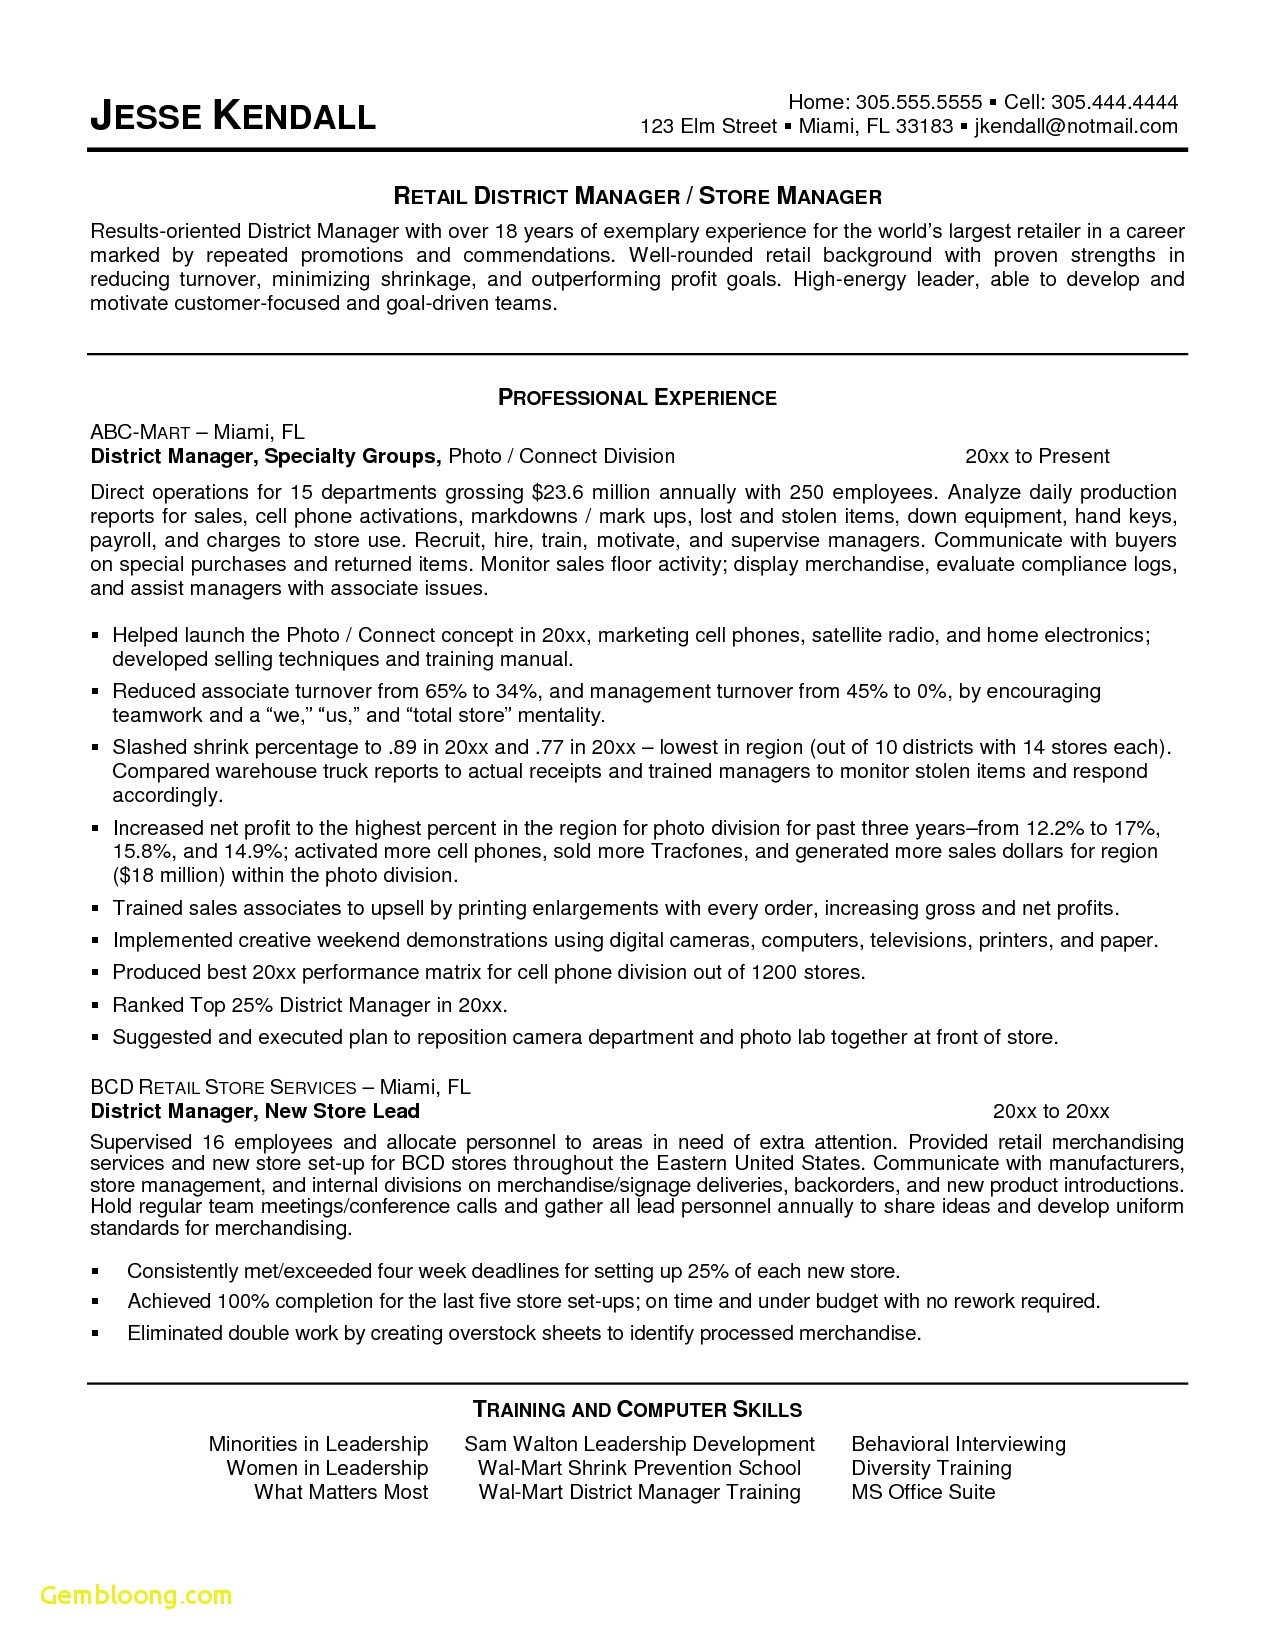 Store Manager Resume Template - Customer Service Manager Resume Unique Fresh Grapher Resume Sample